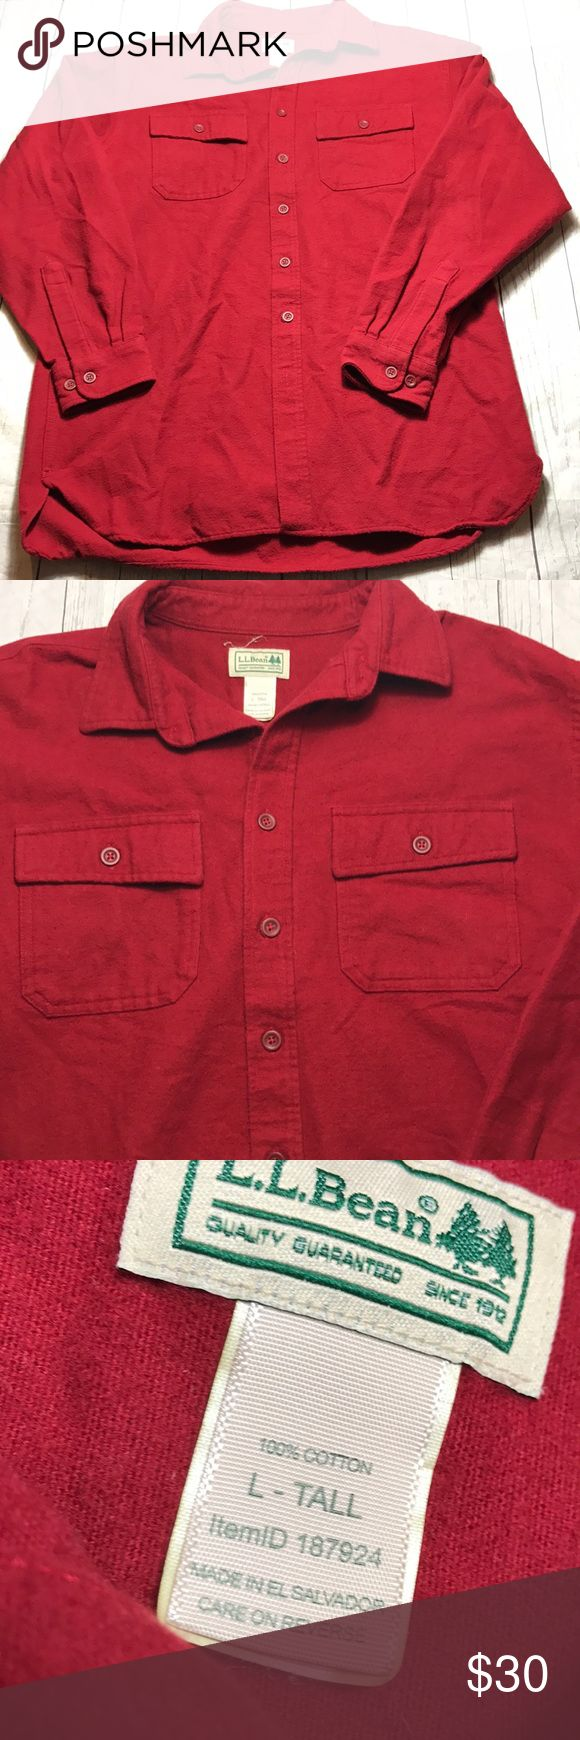 """Vintage LL BEAN Chamois Cotton Heavy Flannel Shirt Vintage L.L. Bean Chamois Shirt Red Large Tall Heavyweight Good Condition with material pilling consistent with age.  Chest: 23"""" Length: 31"""" Sleeve: 35""""  L L.L. Bean Shirts Casual Button Down Shirts"""